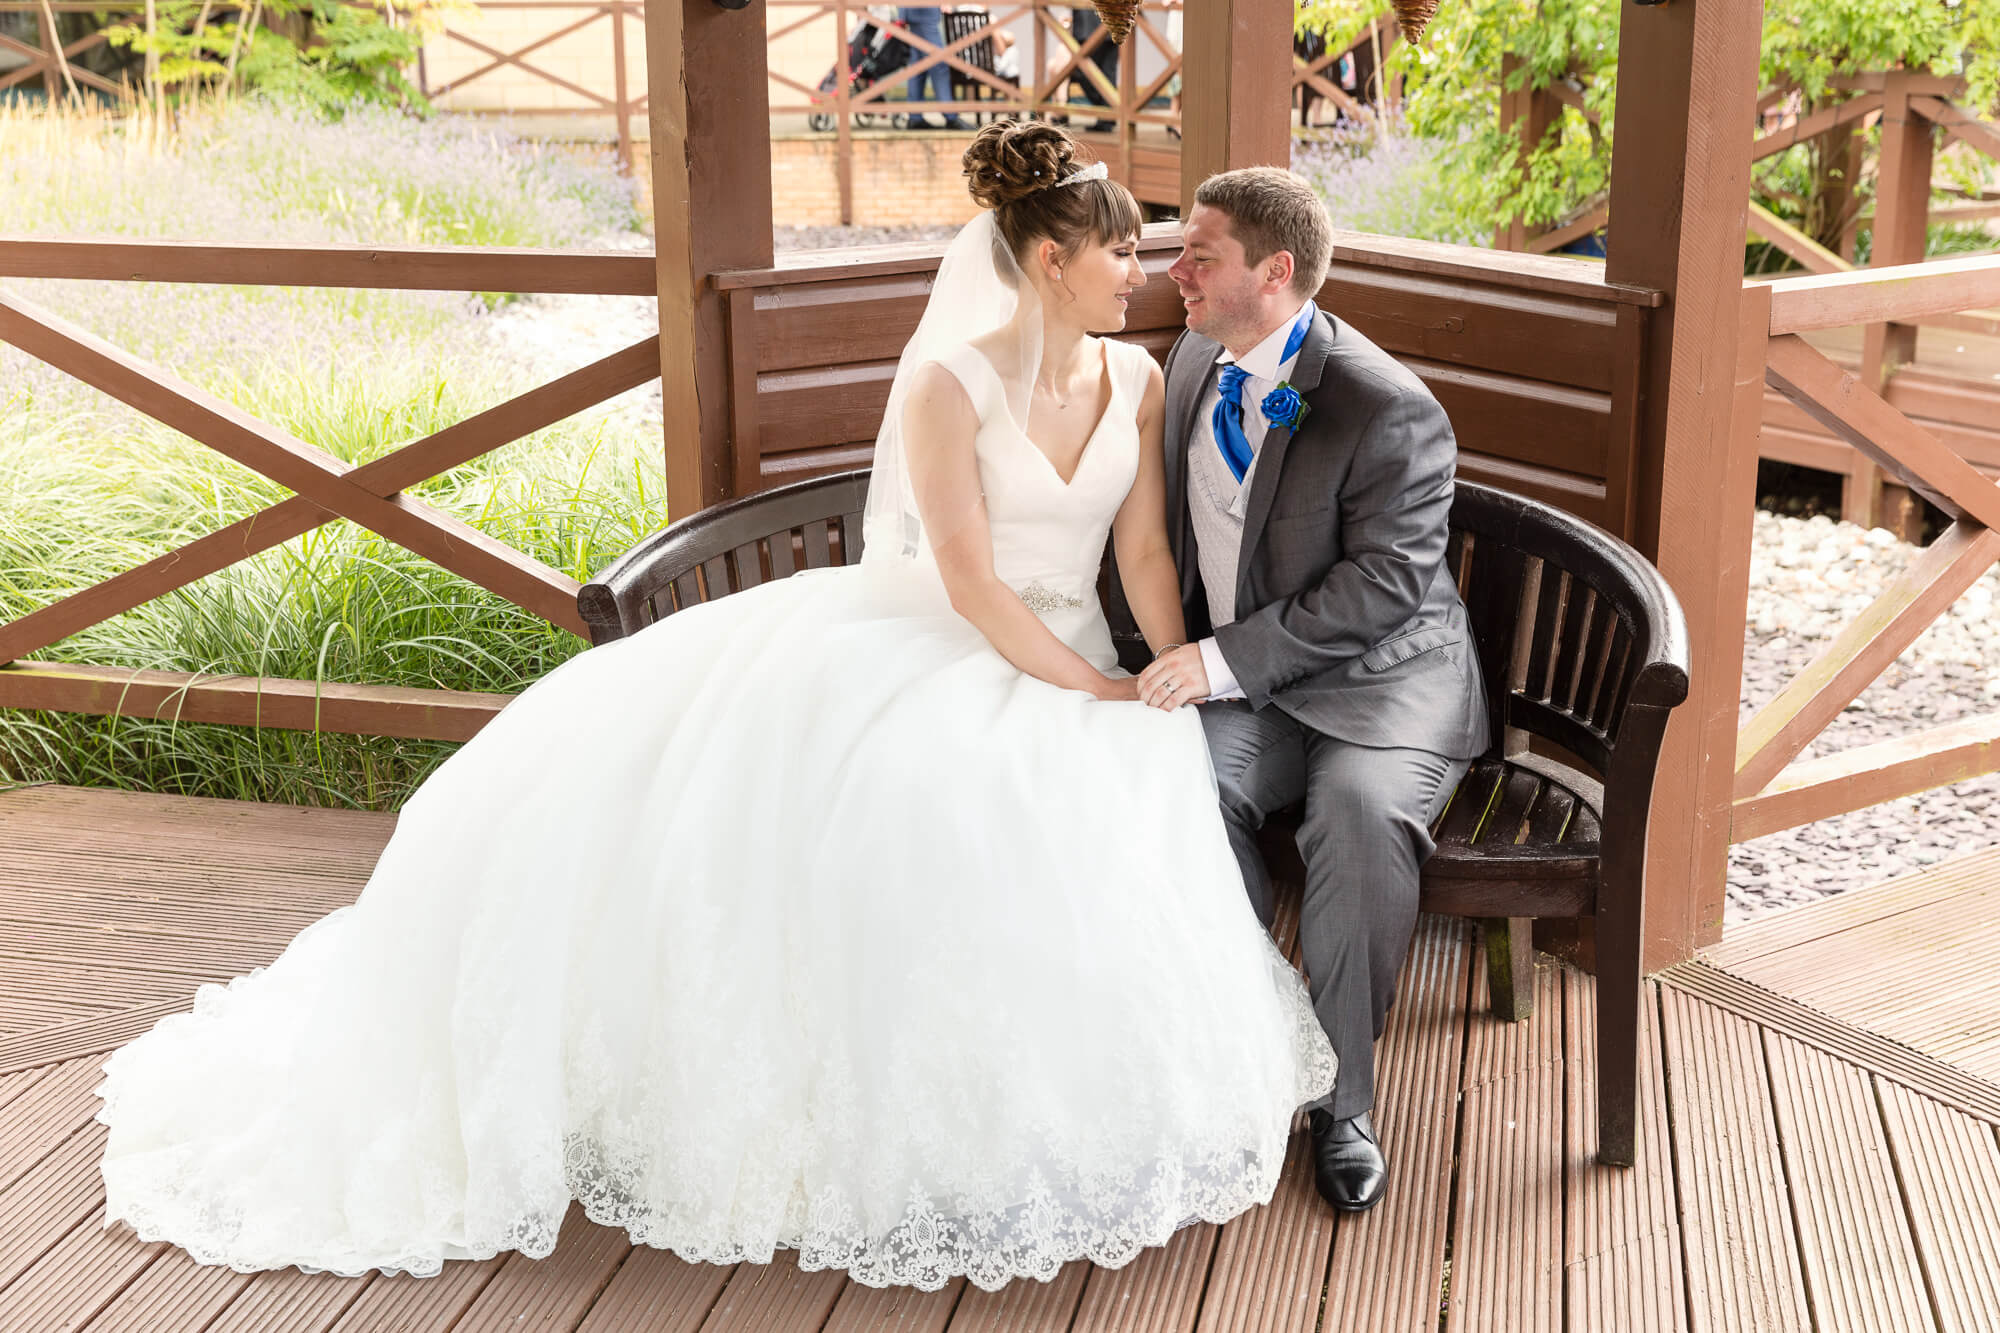 Bride and Groom portrait by Hampshire Photographers, moore&moore